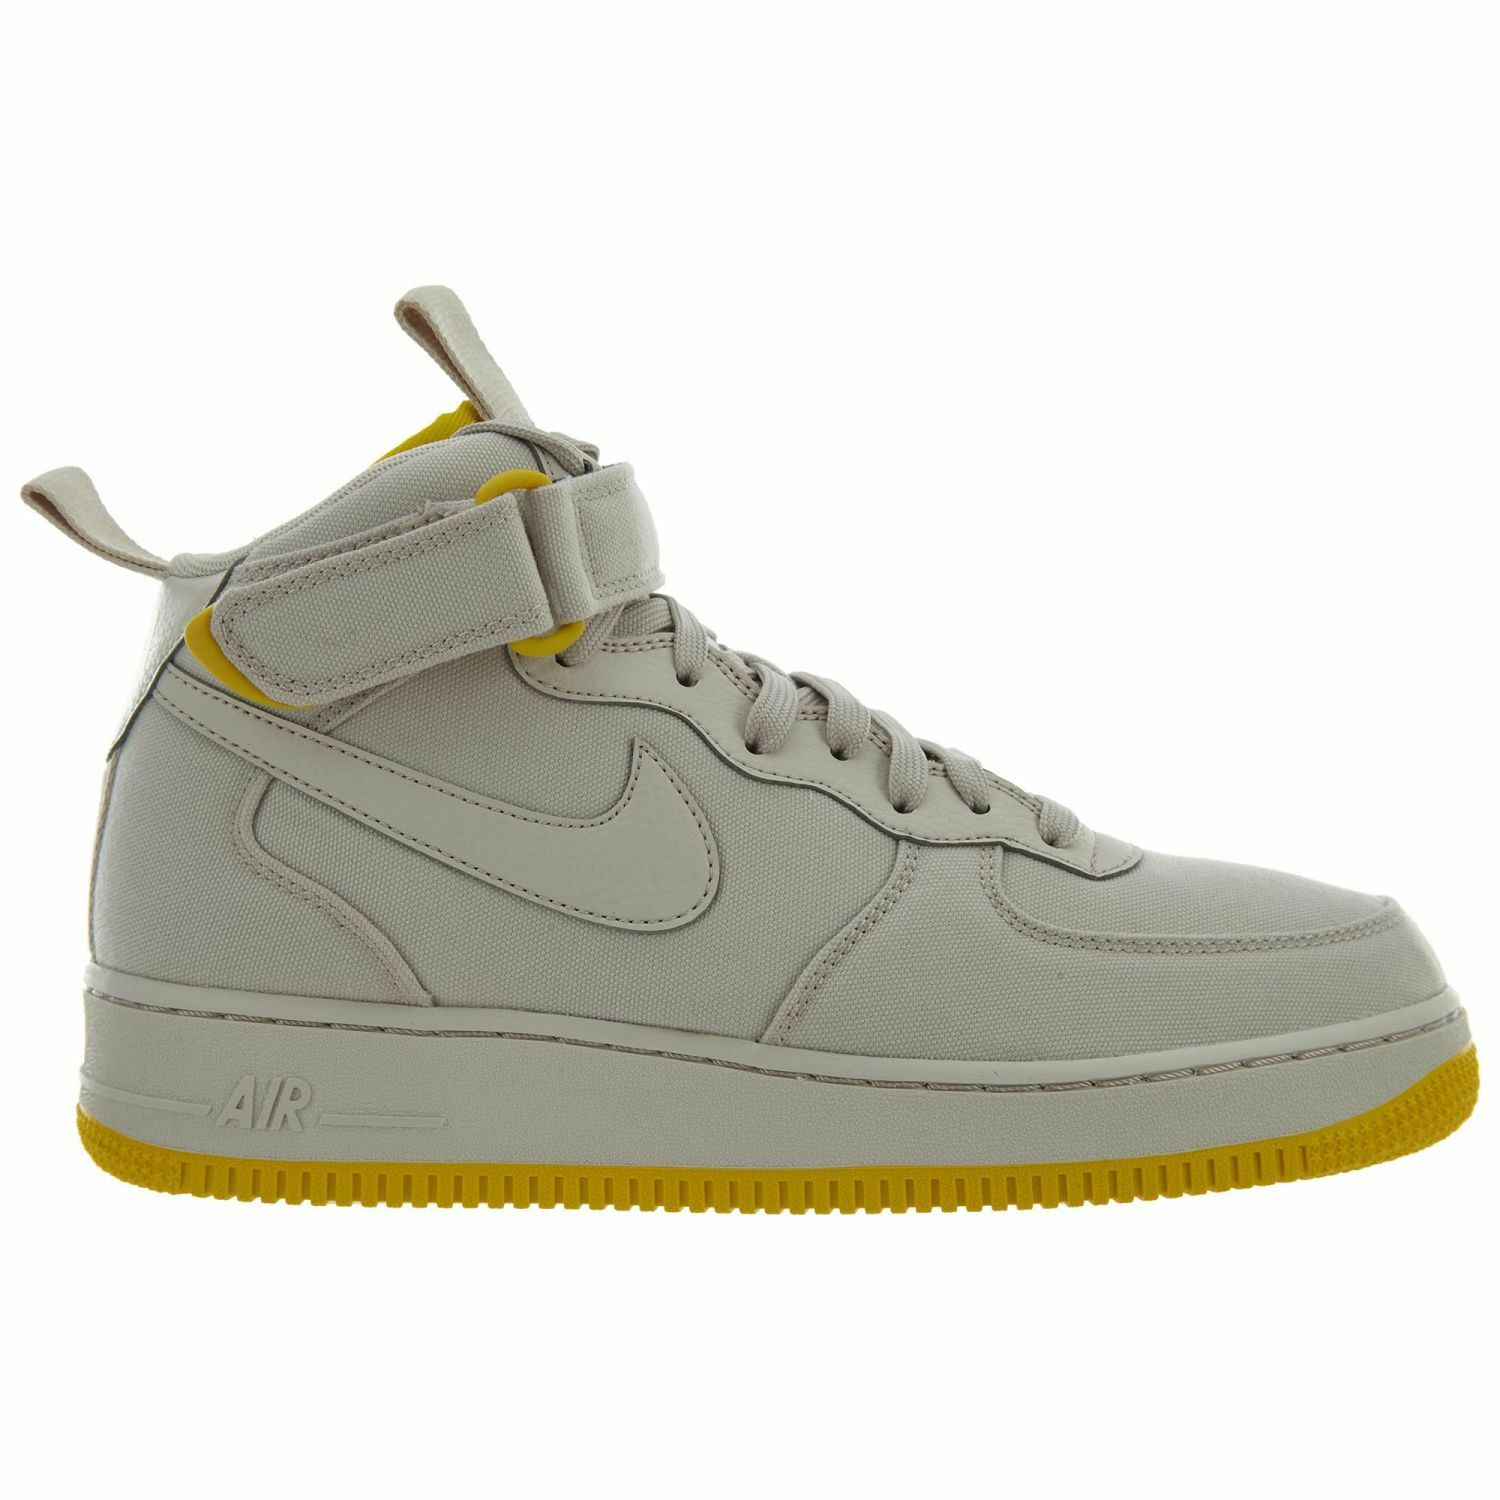 Nike Air Force 1 Mid Canvas Mens AH6770-002 Desert Sand Sulfur Shoes Comfortable Great discount